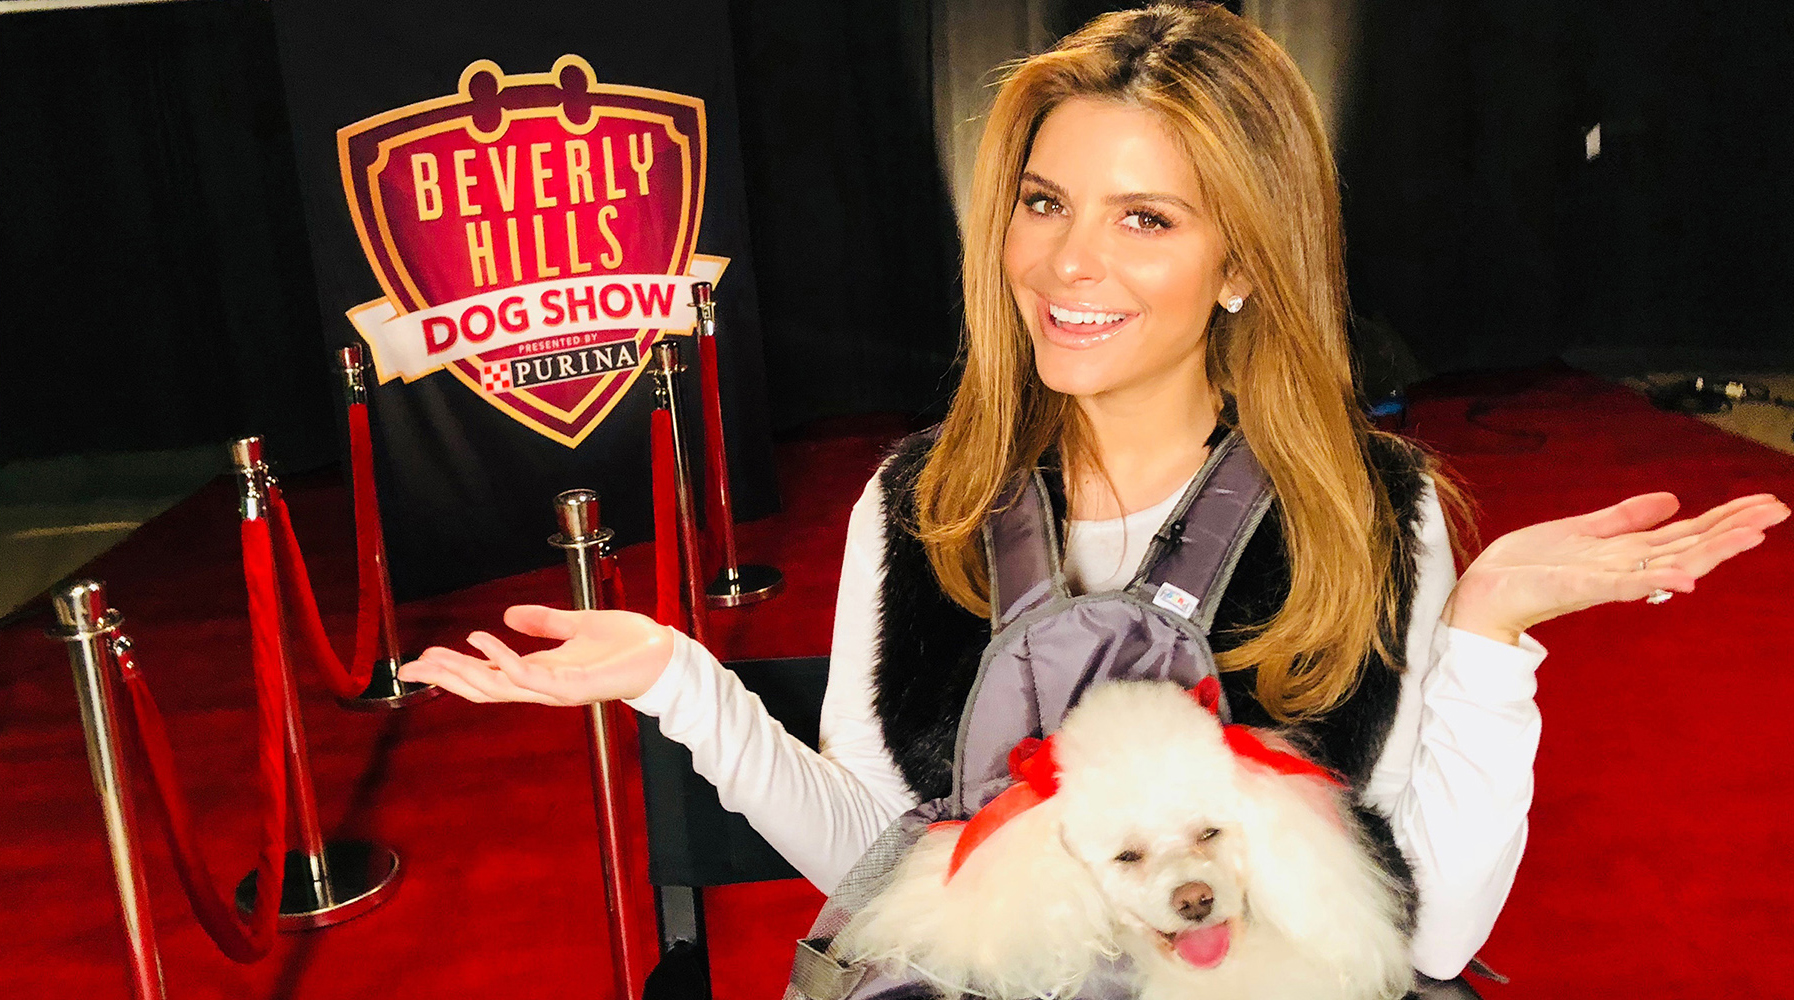 The Beverly Hills Dog Show Presented by Purina will combine the stars of Hollywood with the stars of the dog world and will crown one of America's great dogs as its 2018 champion.